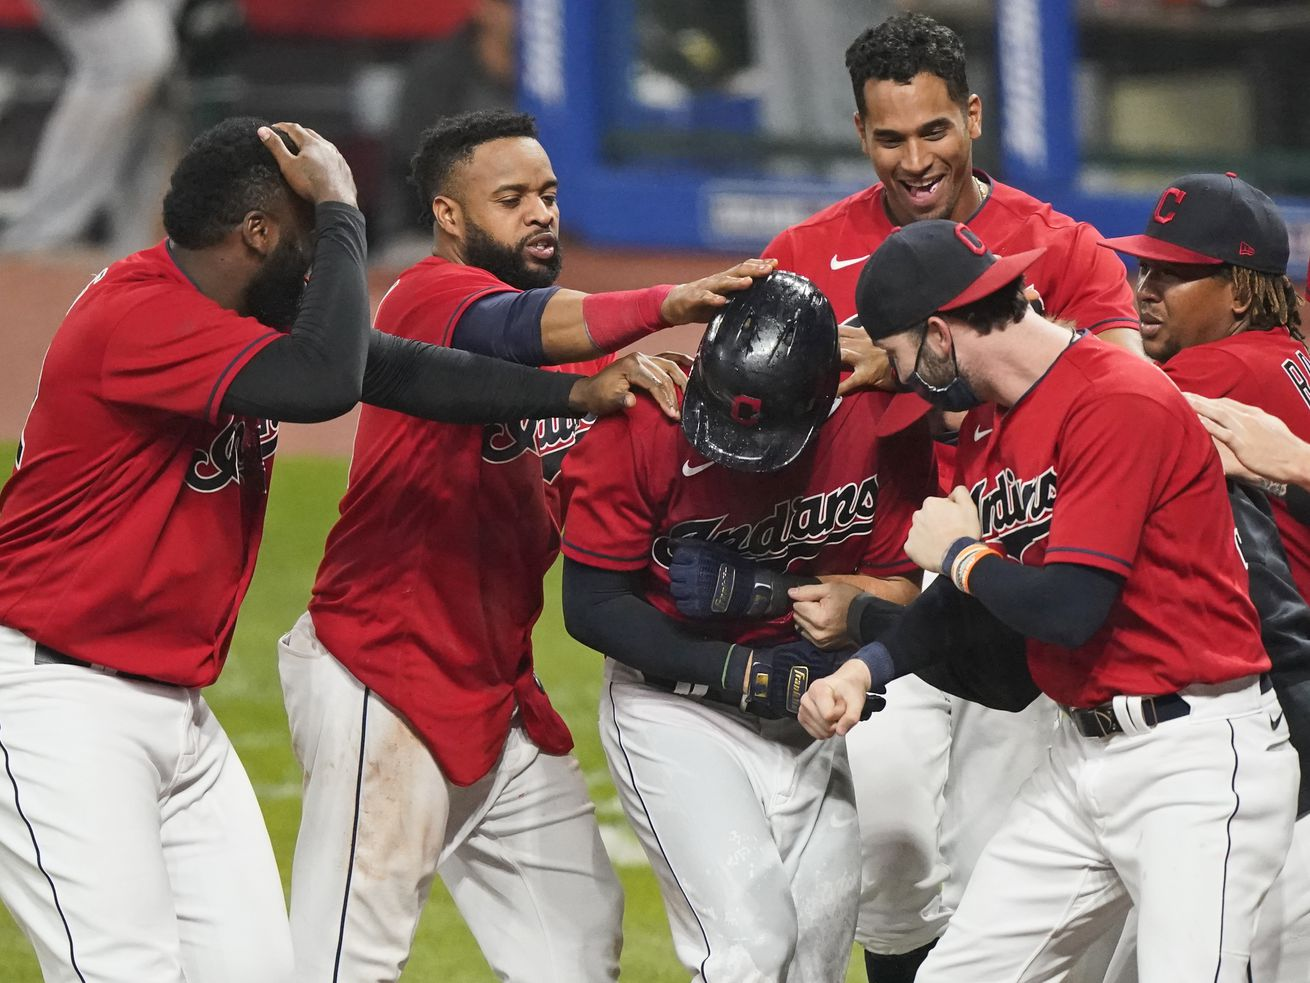 Indians walk off White Sox again